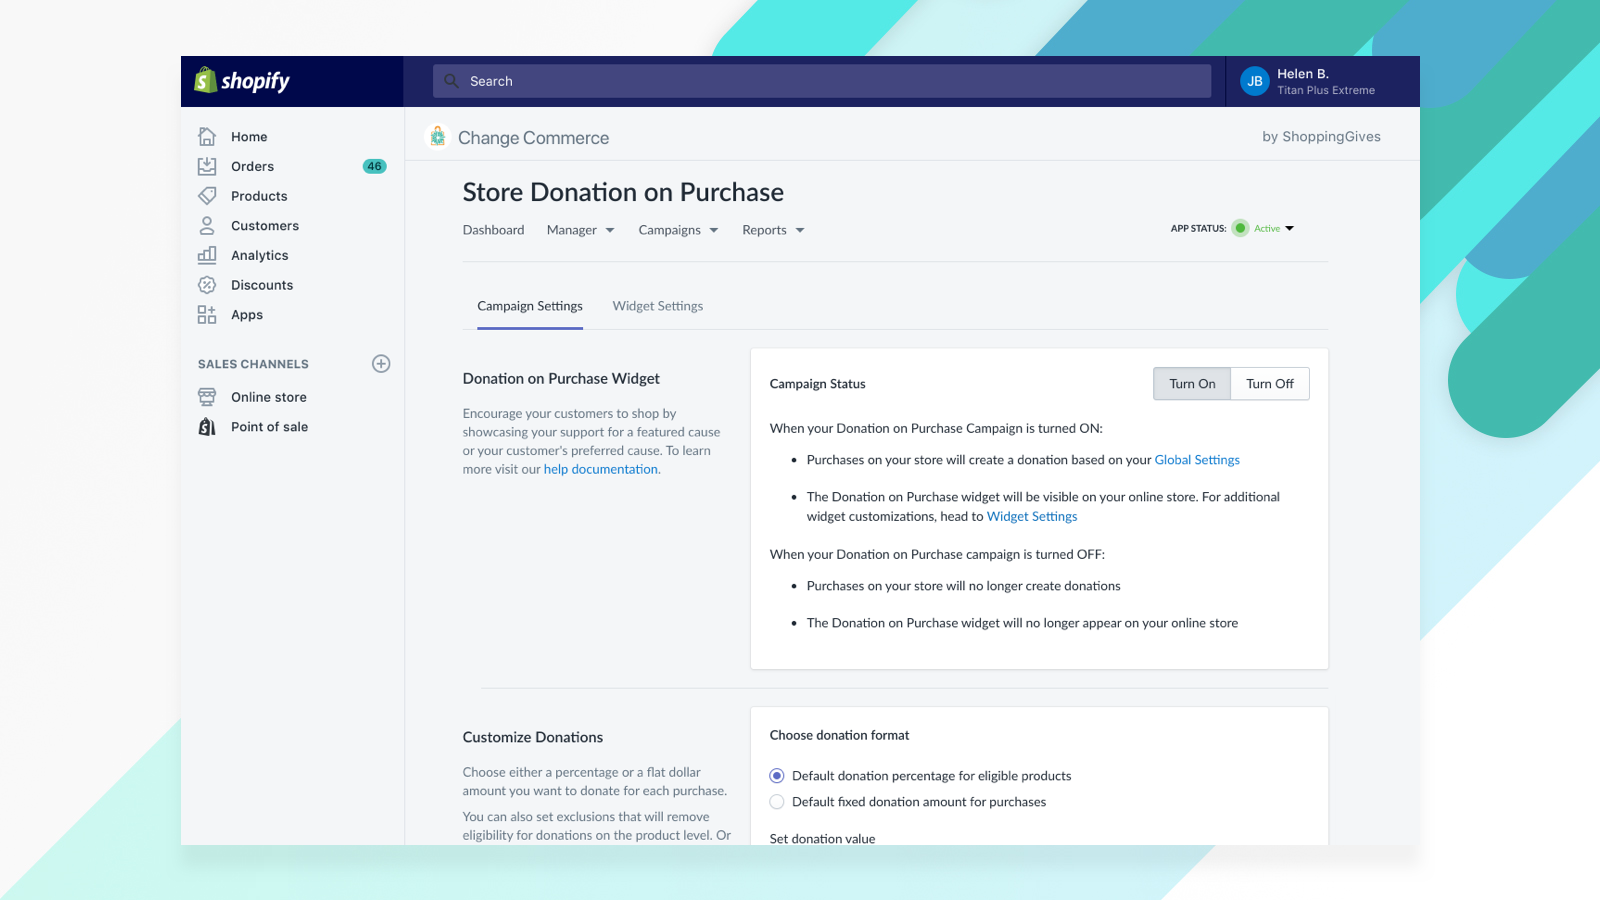 5-Change Commerce - Store Donation on Purchase